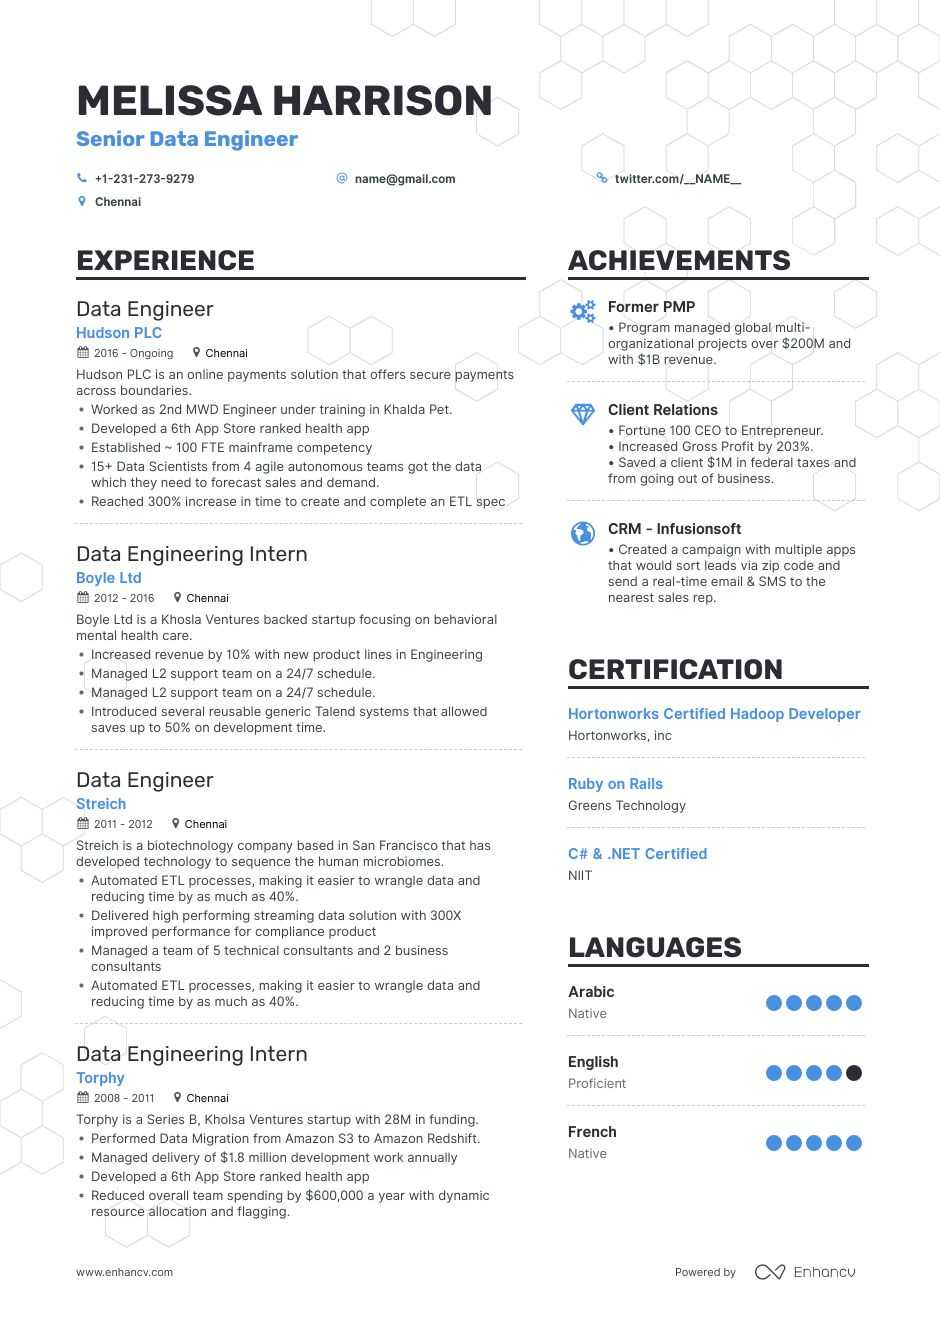 data engineer resume examples do and don ts for enhancv talend developer format food Resume Talend Developer Resume